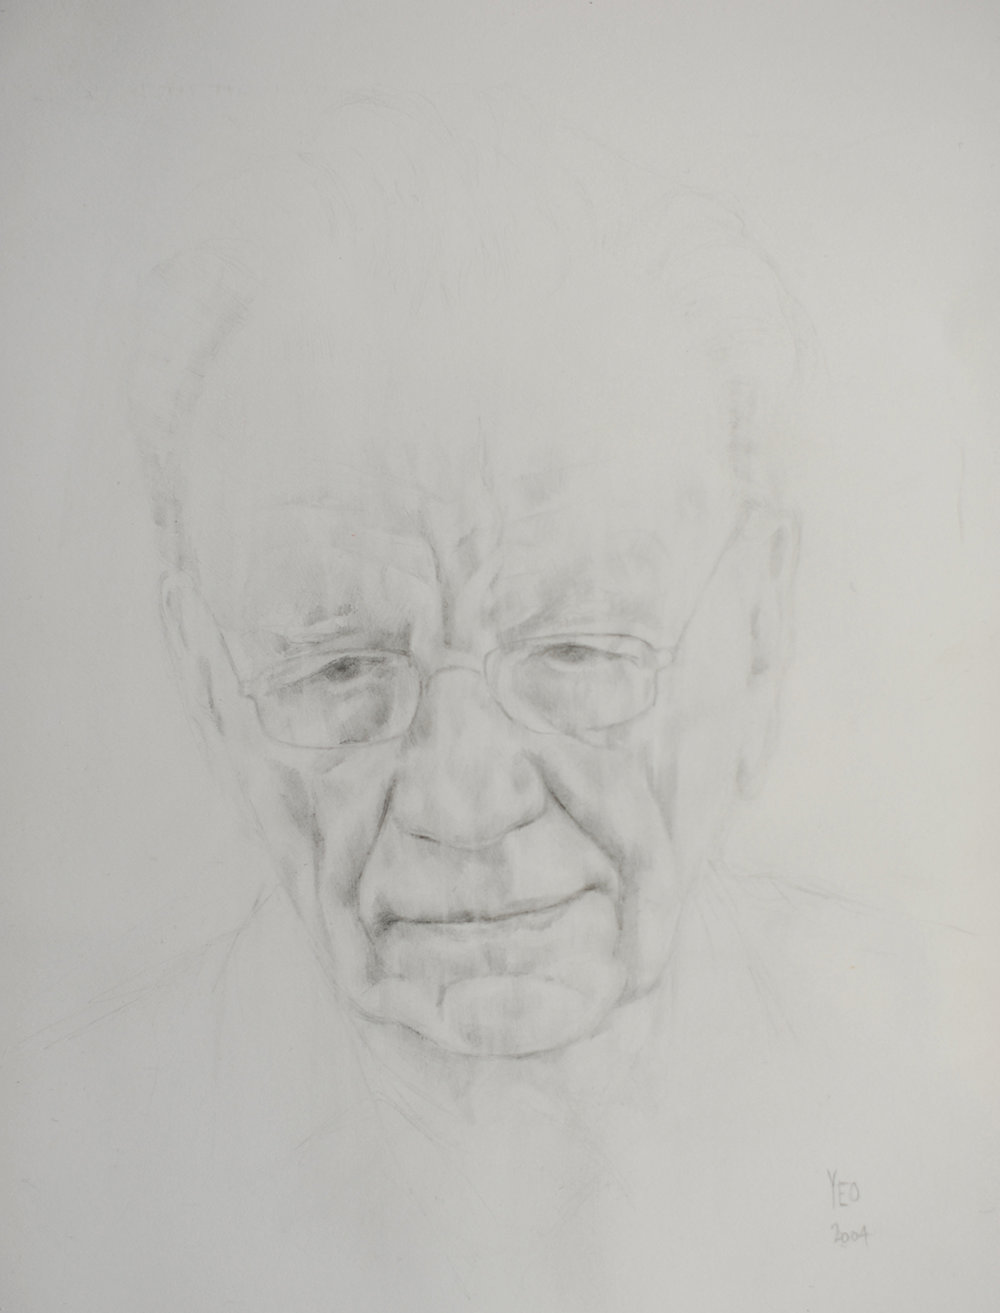 Rupert Murdoch Portrait drawing.jpg